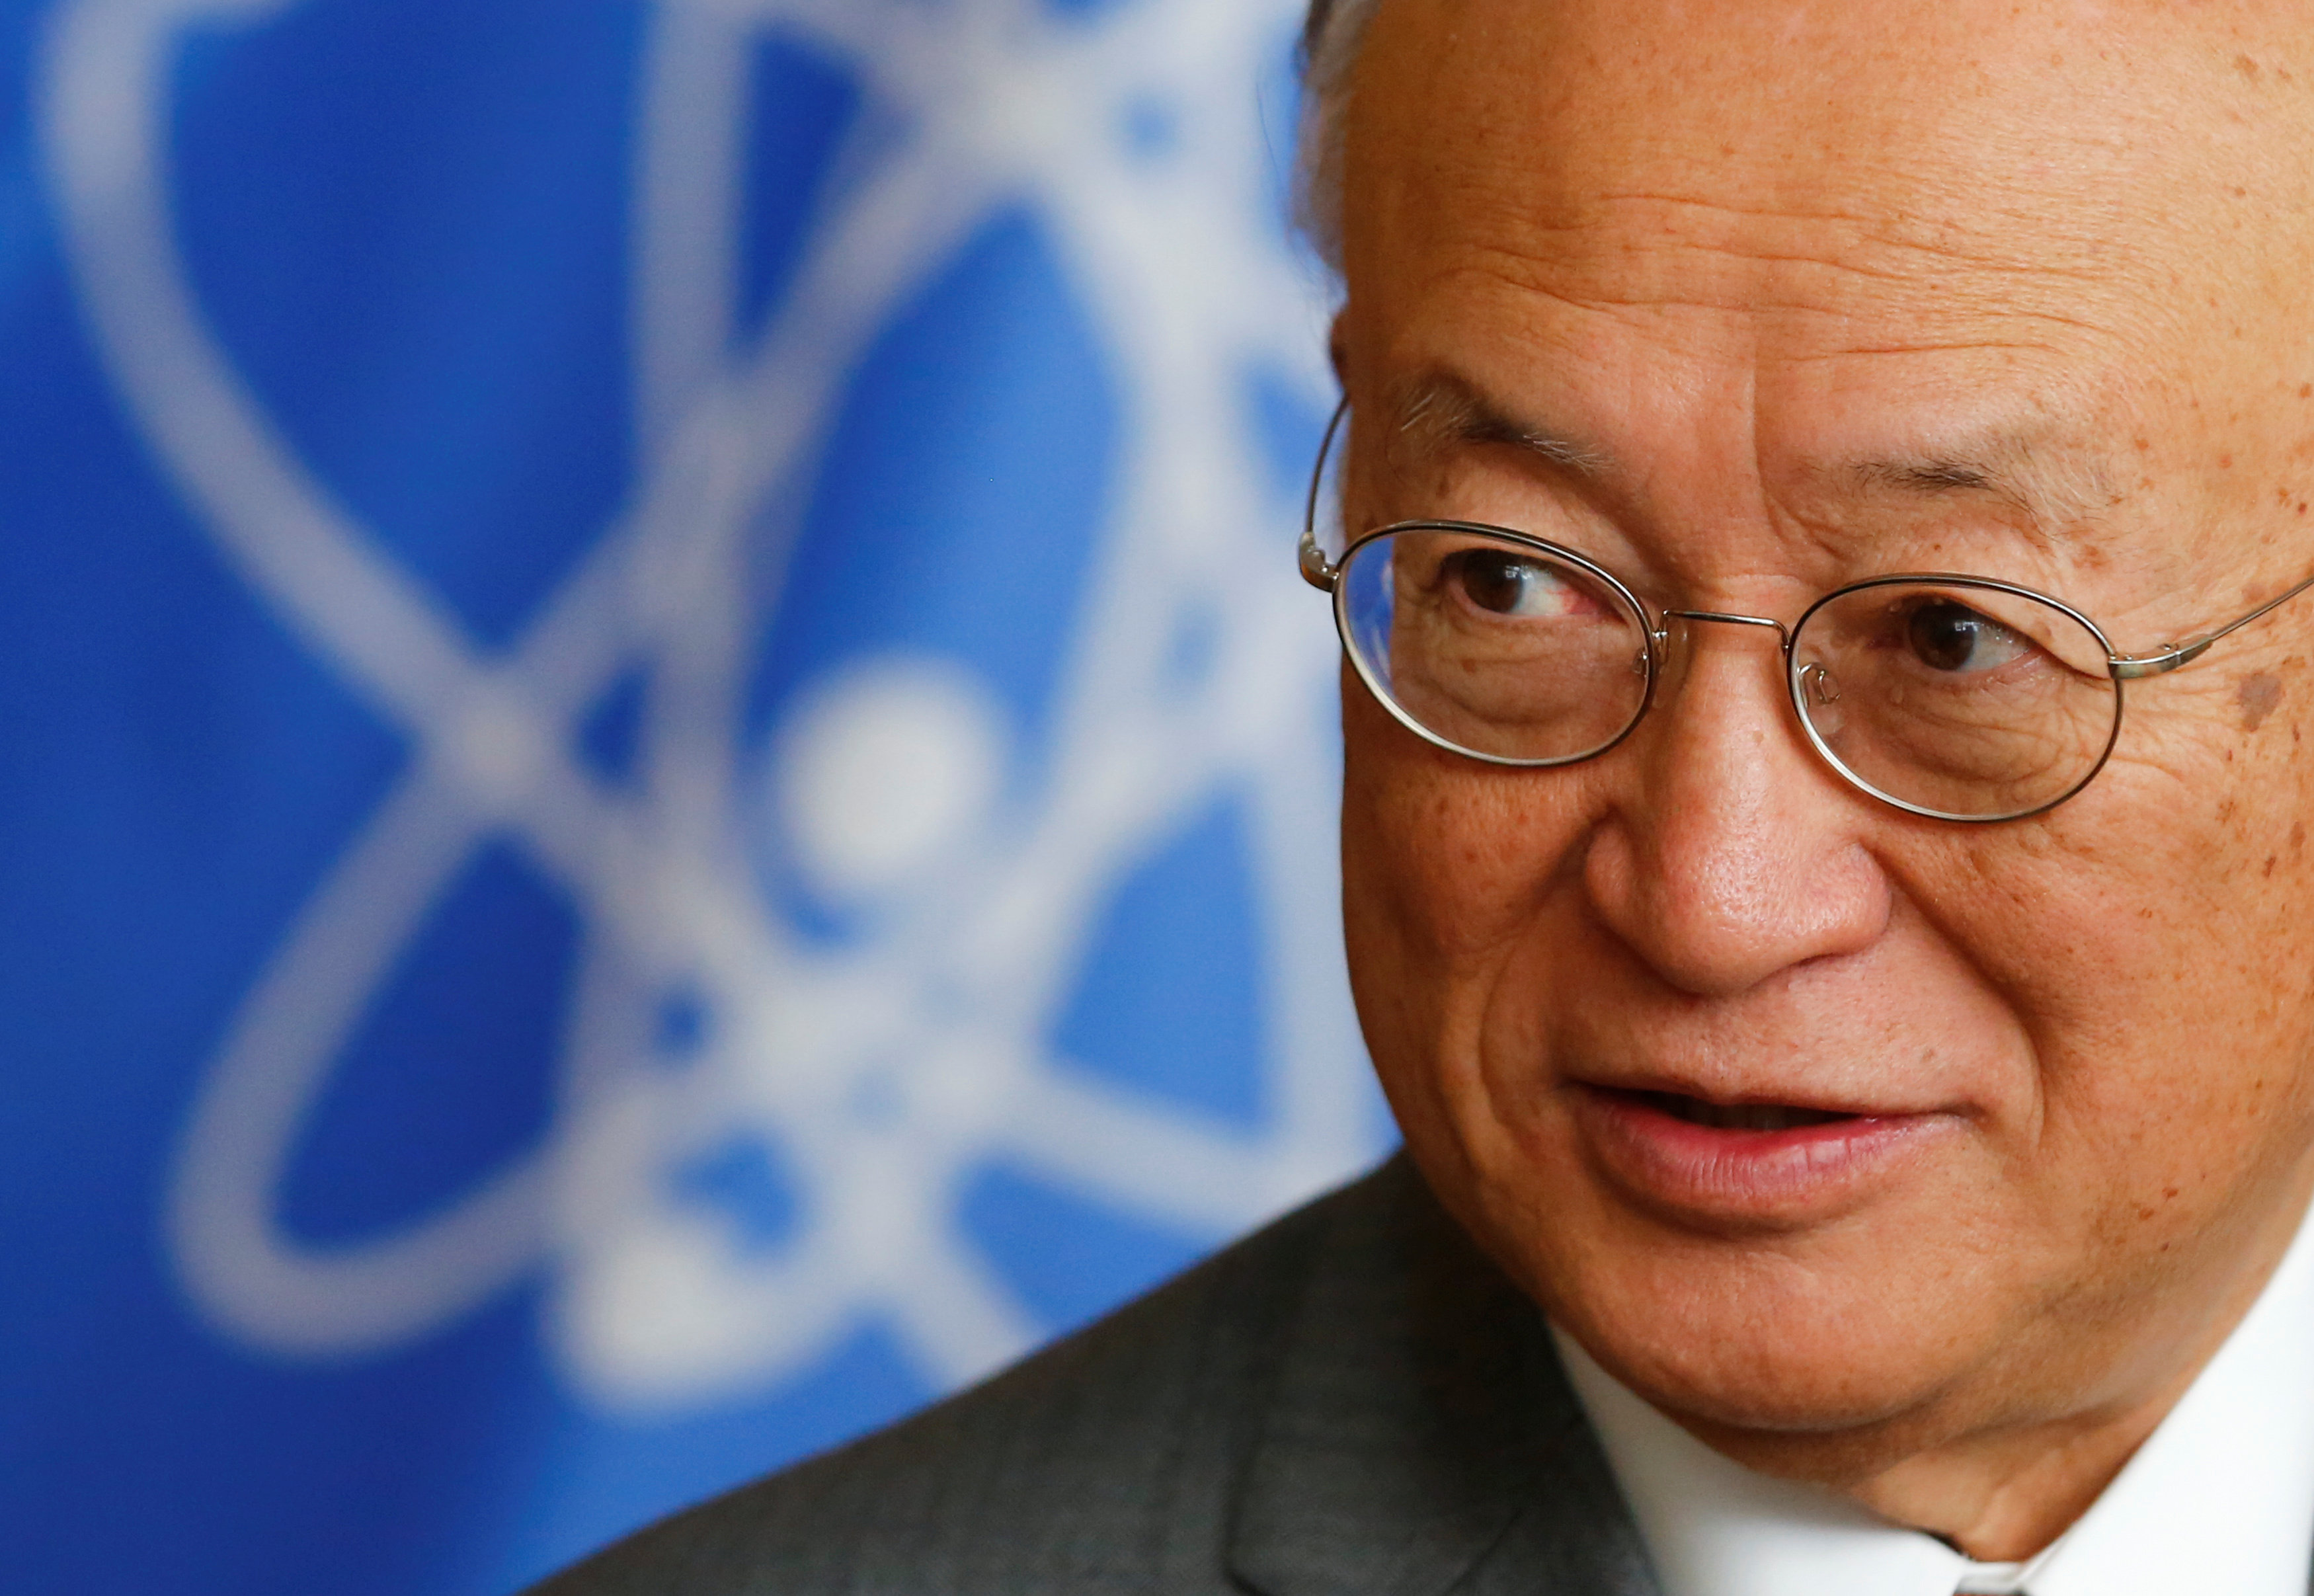 International Atomic Energy Agency (IAEA) Director General Yukiya Amano reacts during an interview with Reuters at the IAEA headquarters in Vienna, Austria September 26, 2017. REUTERS/Leonhard Foeger